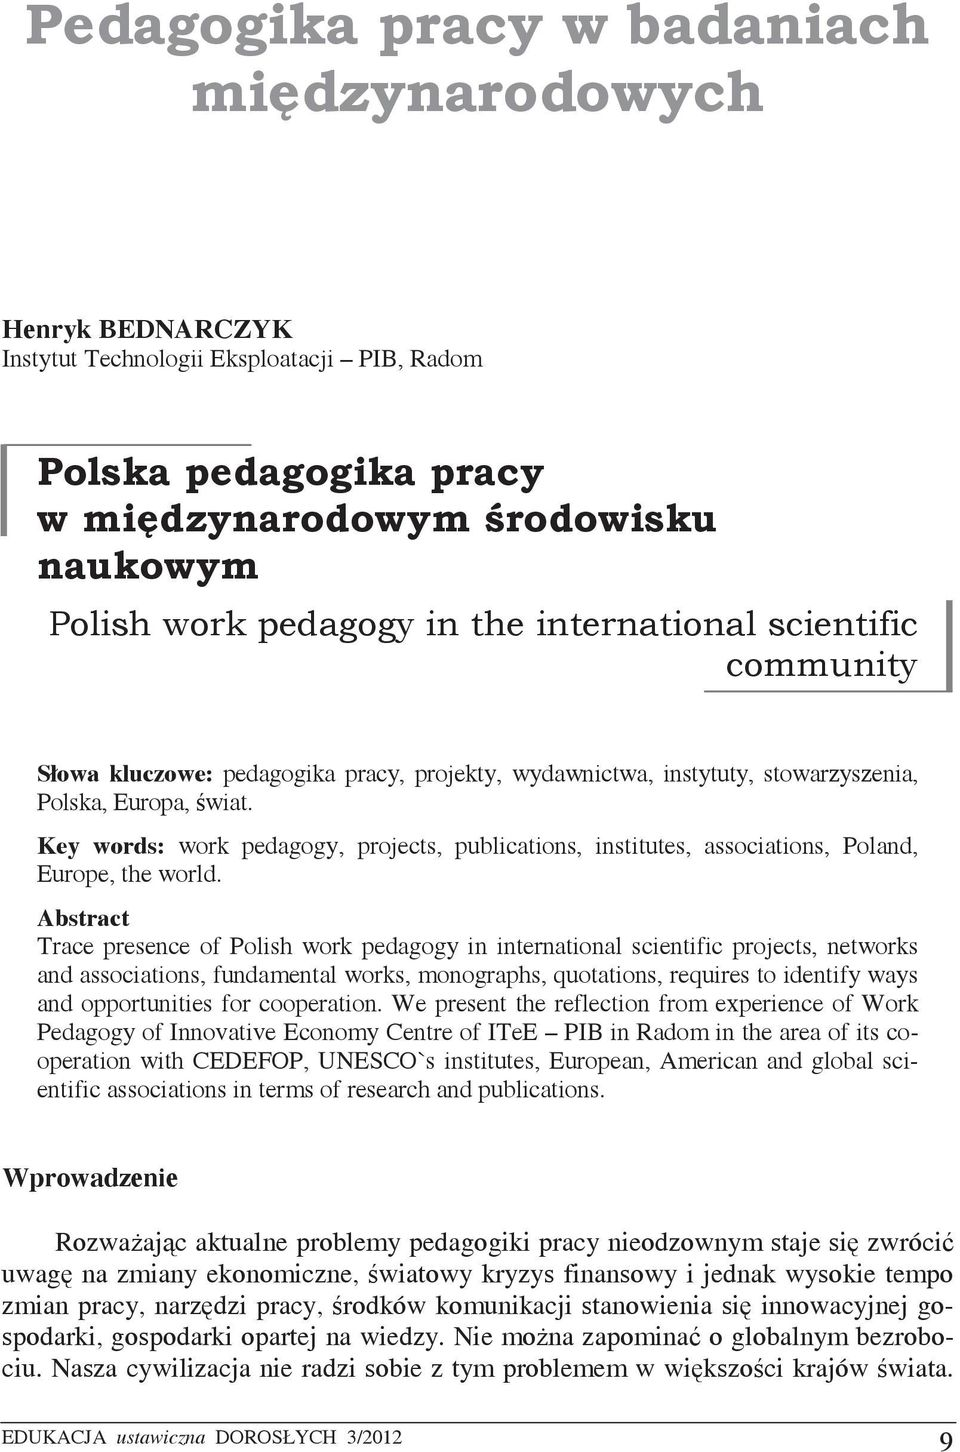 Abstract Trace presence of Polish work pedagogy in international scientific projects, networks and associations, fundamental works, monographs, quotations, requires to identify ways and opportunities